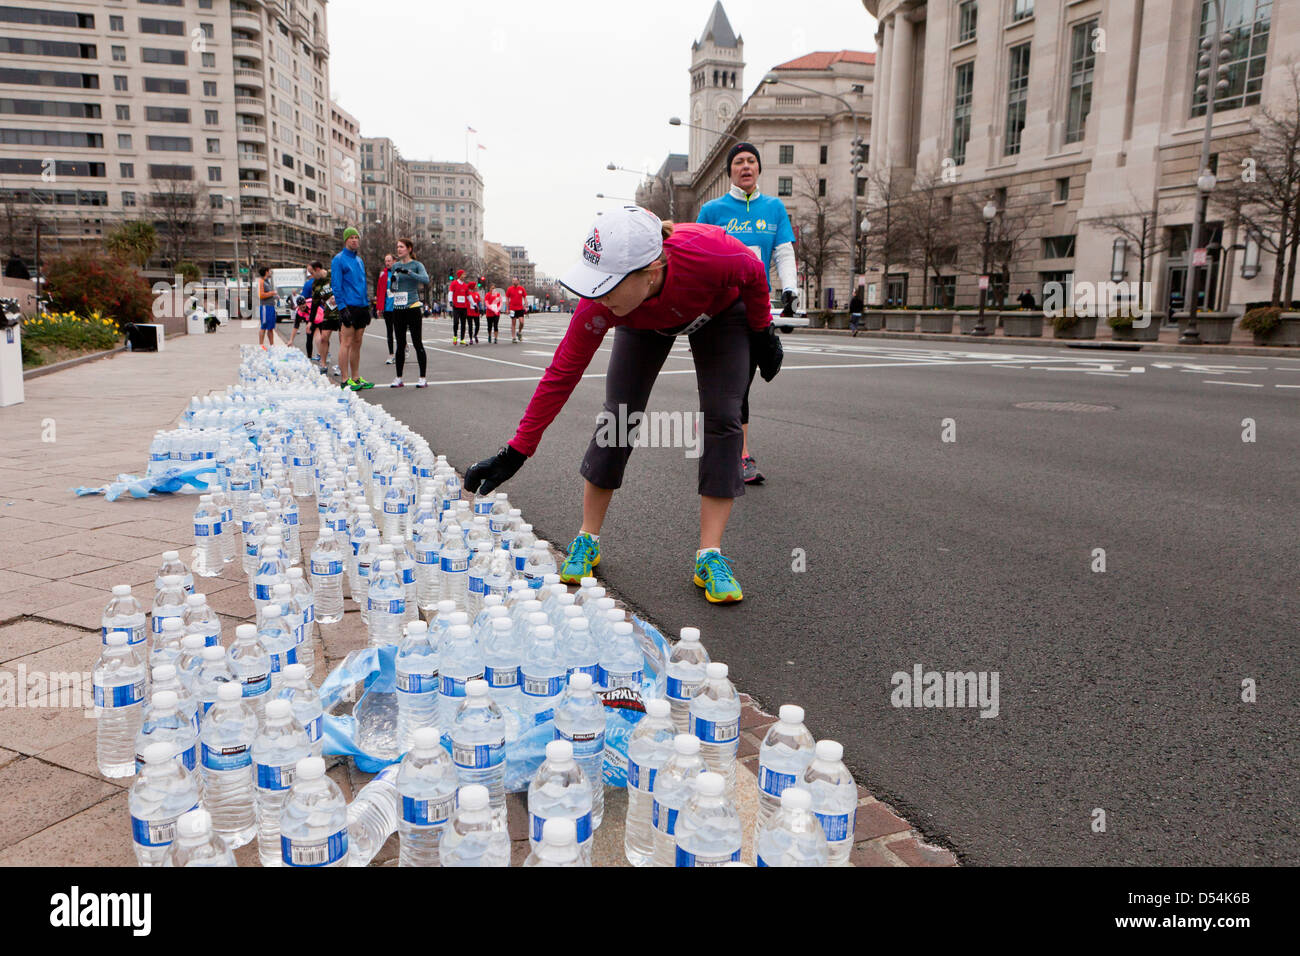 Runners picking up bottled water after race - Stock Image